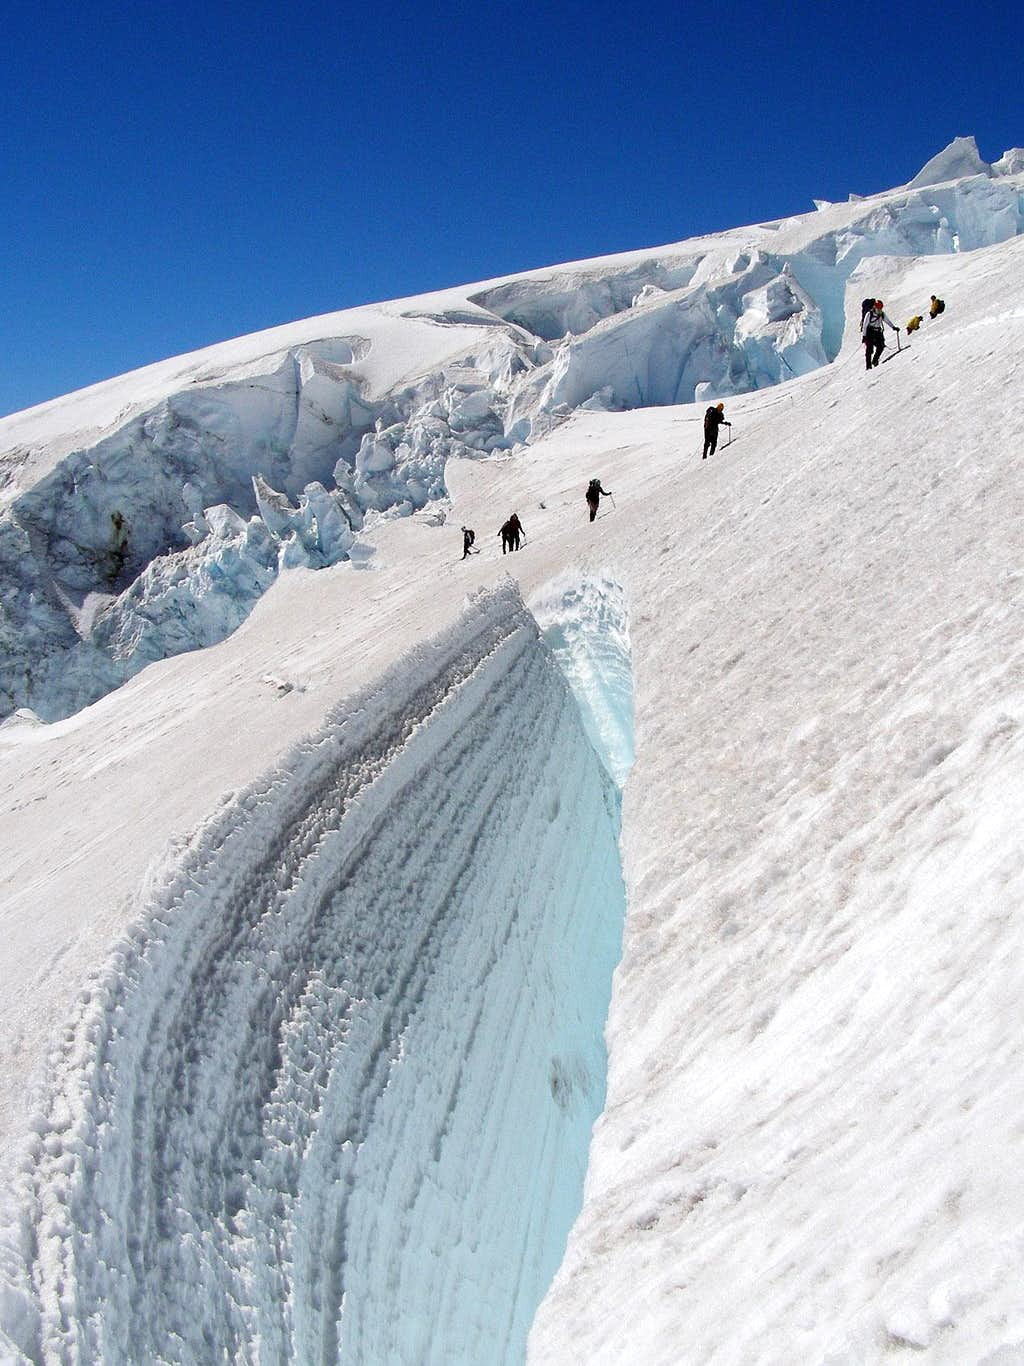 Above The Crevasse